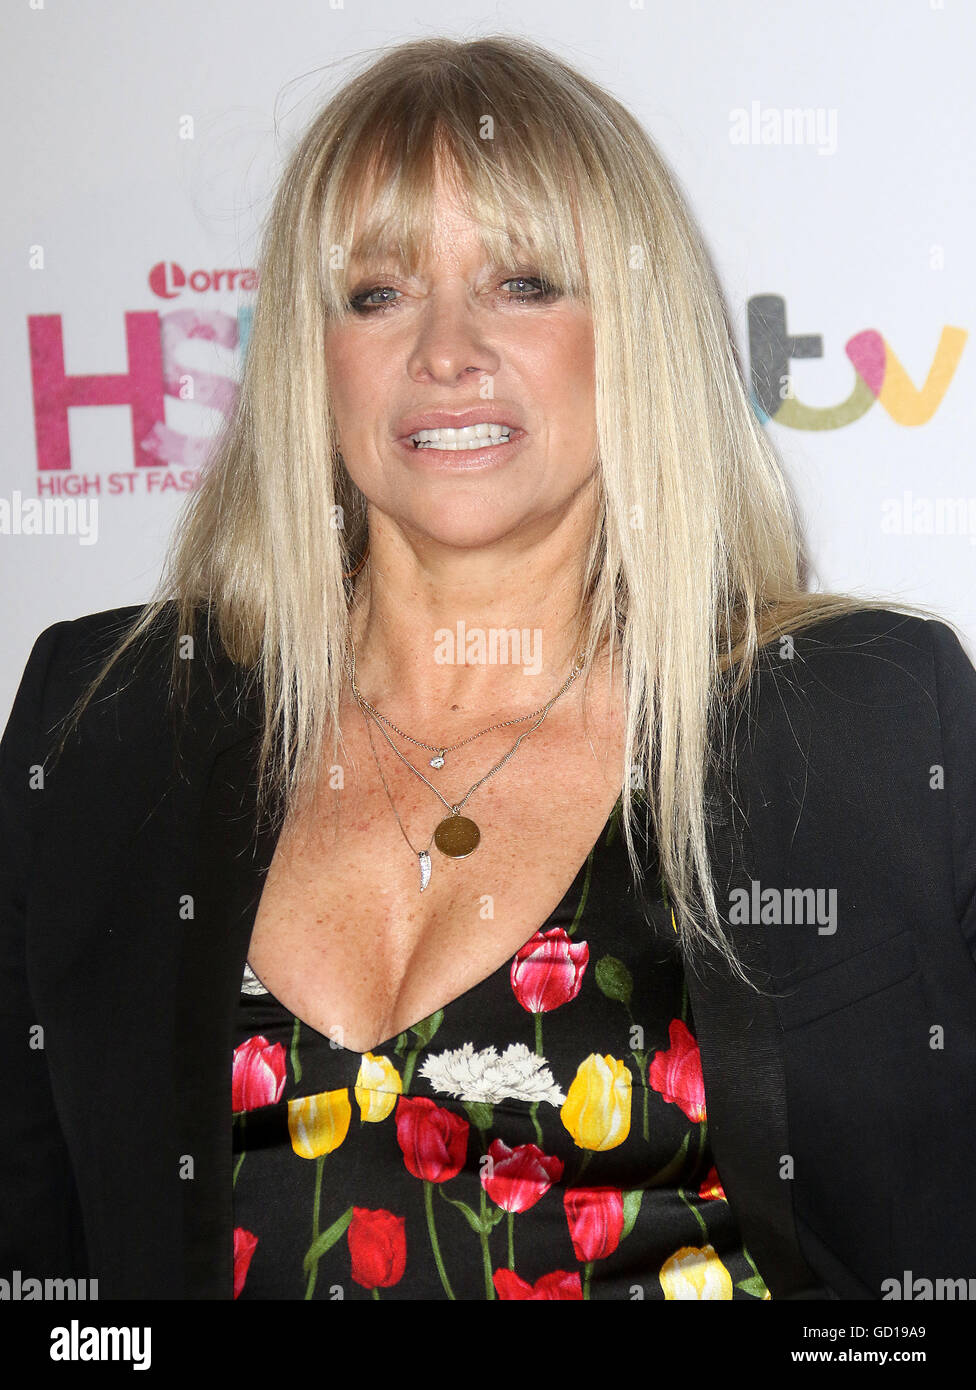 May 17, 2016 - Jo Wood attending Lorraine's High Street Fashion Awards at Grand Connaught Rooms in London, UK. - Stock Image